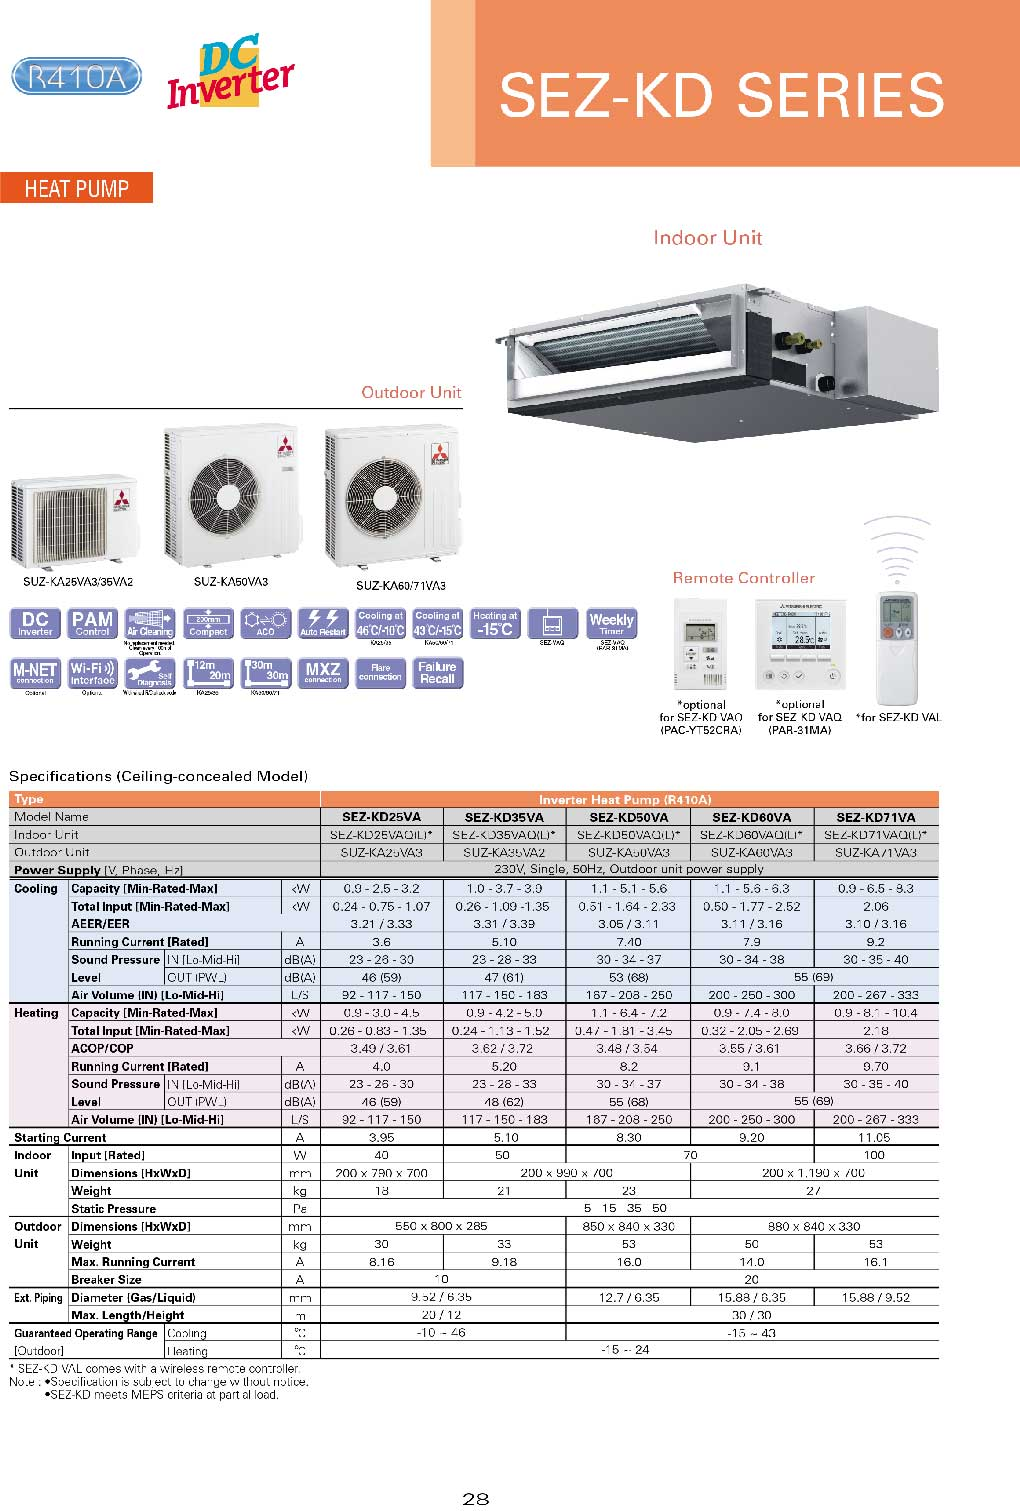 Mitsubishi-Air-Conditioning-Systems-29